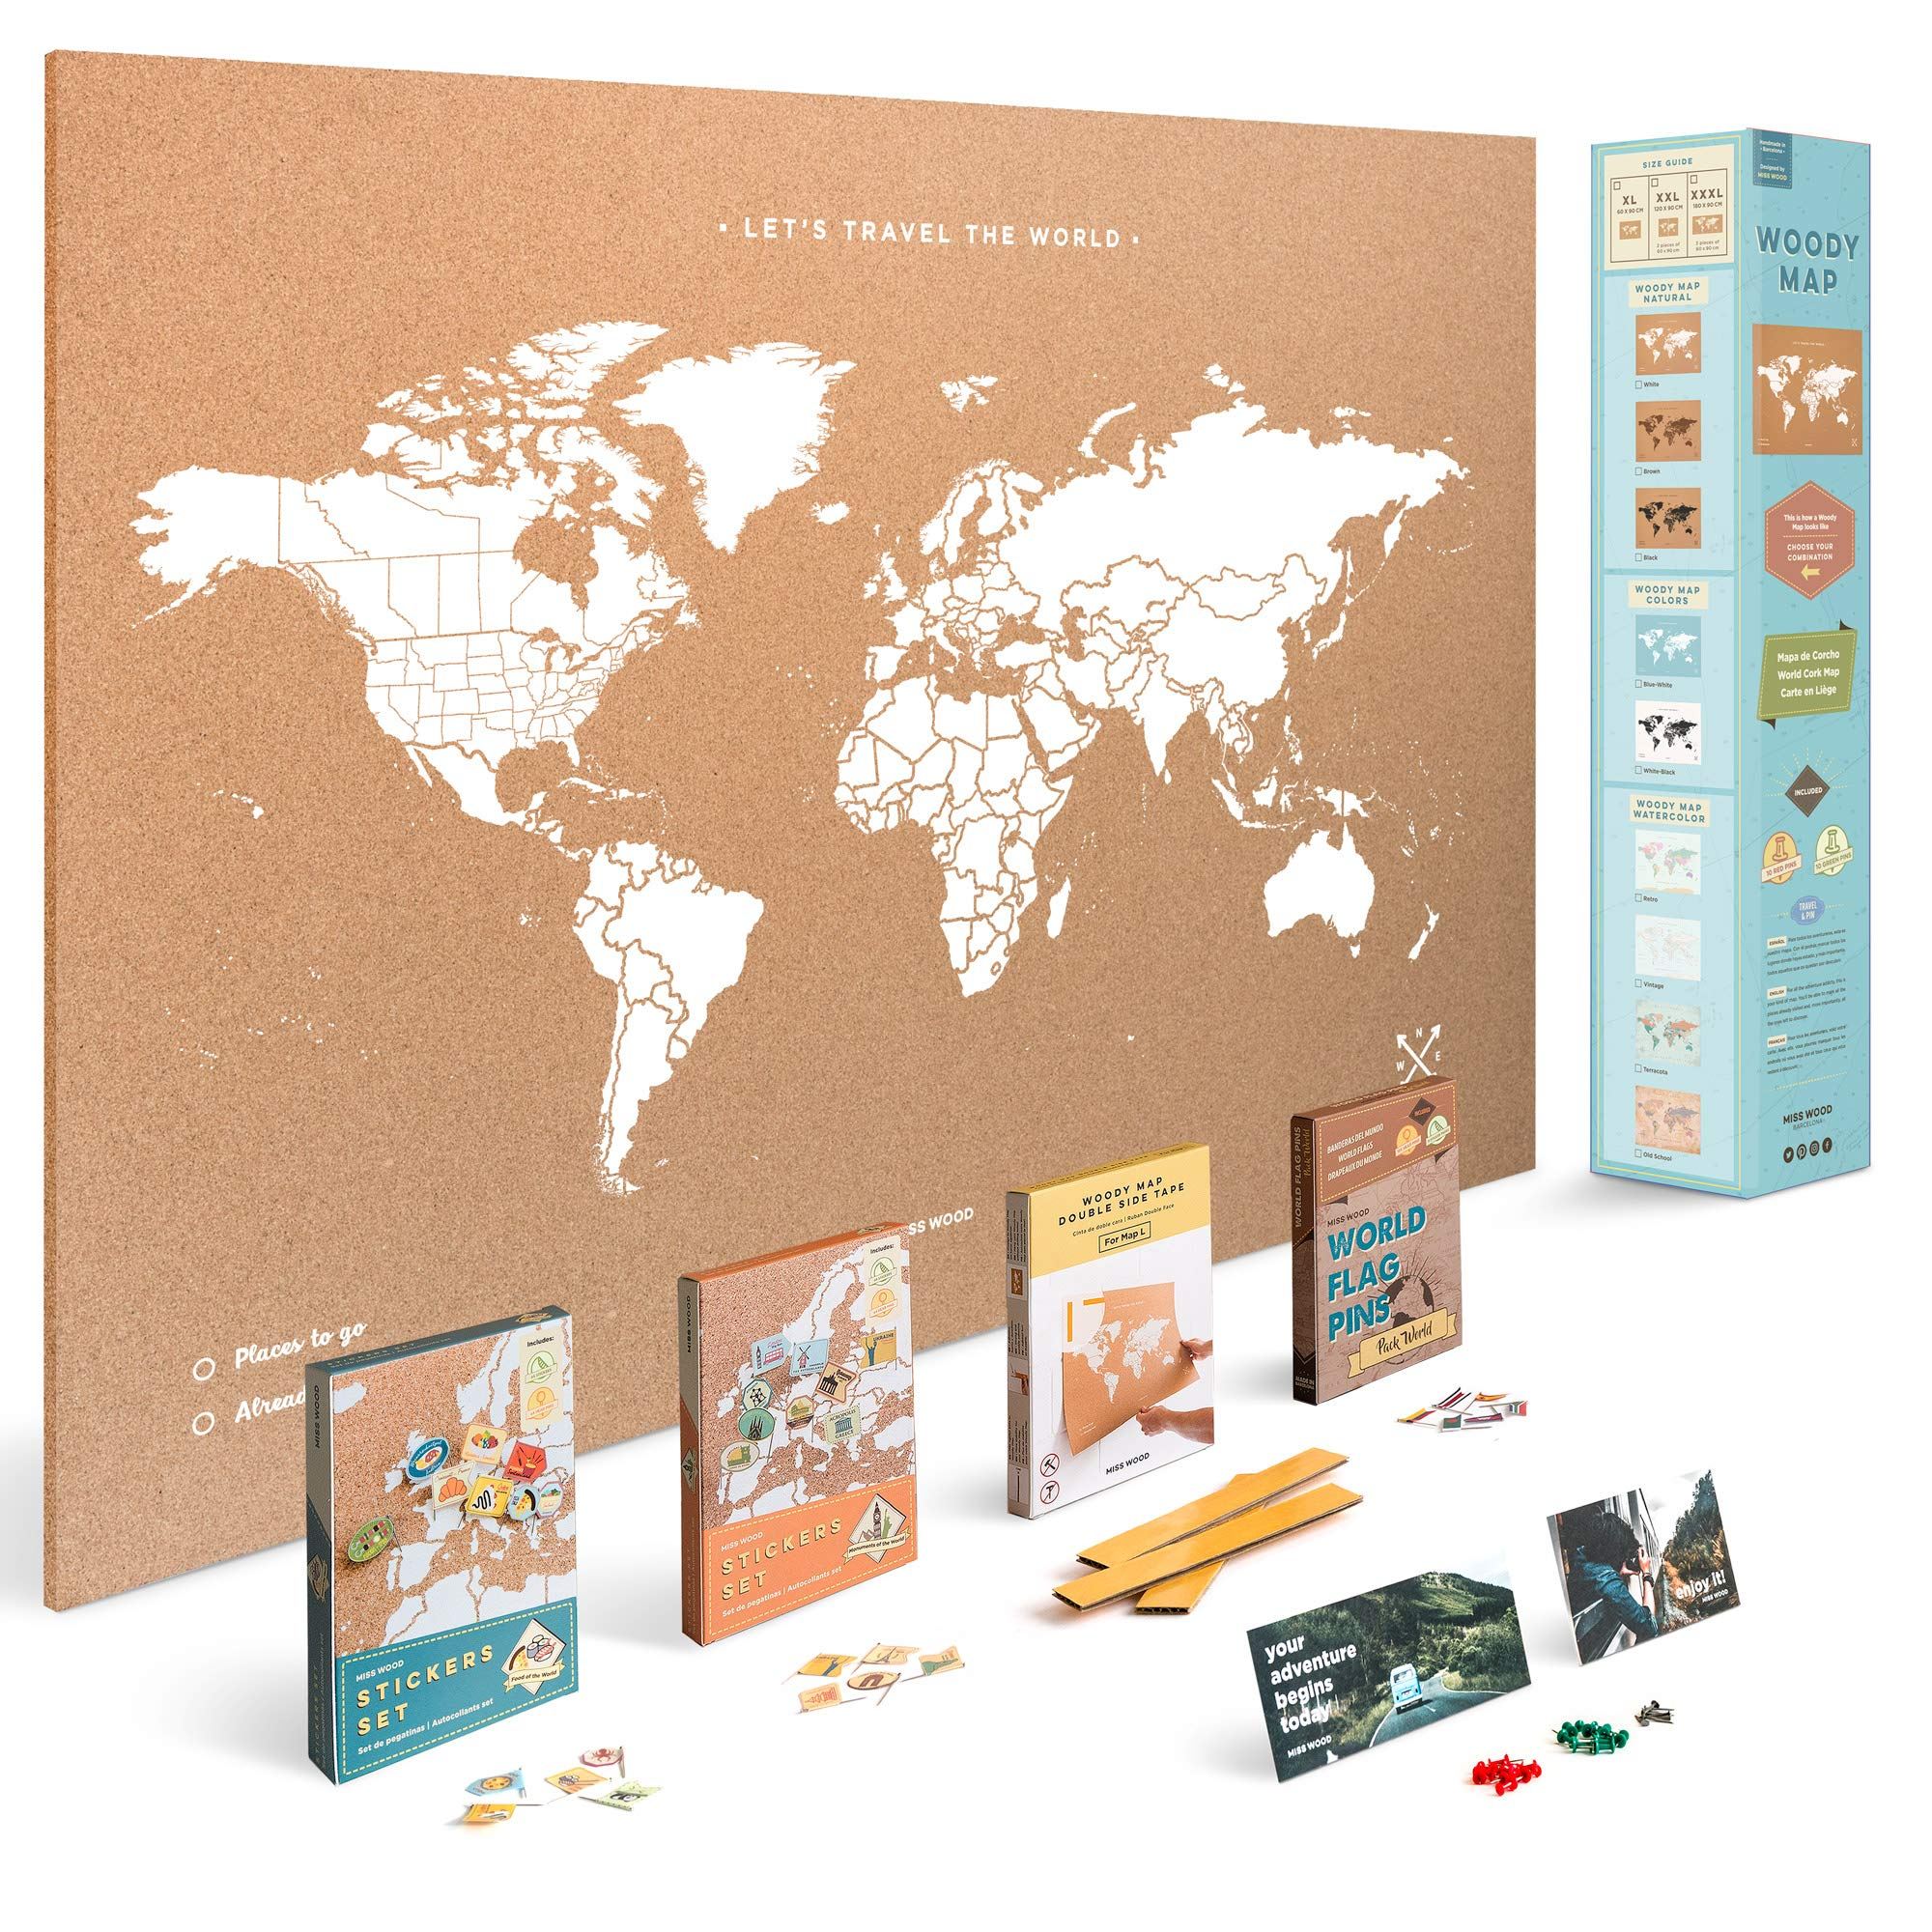 Push Pin Travel Map Kit Includes: Cork World Travel Map, World Flags, Monument and Food Stickers, for Travelers (White, XL (23.6 x 35.4 inches)) by Miss Wood